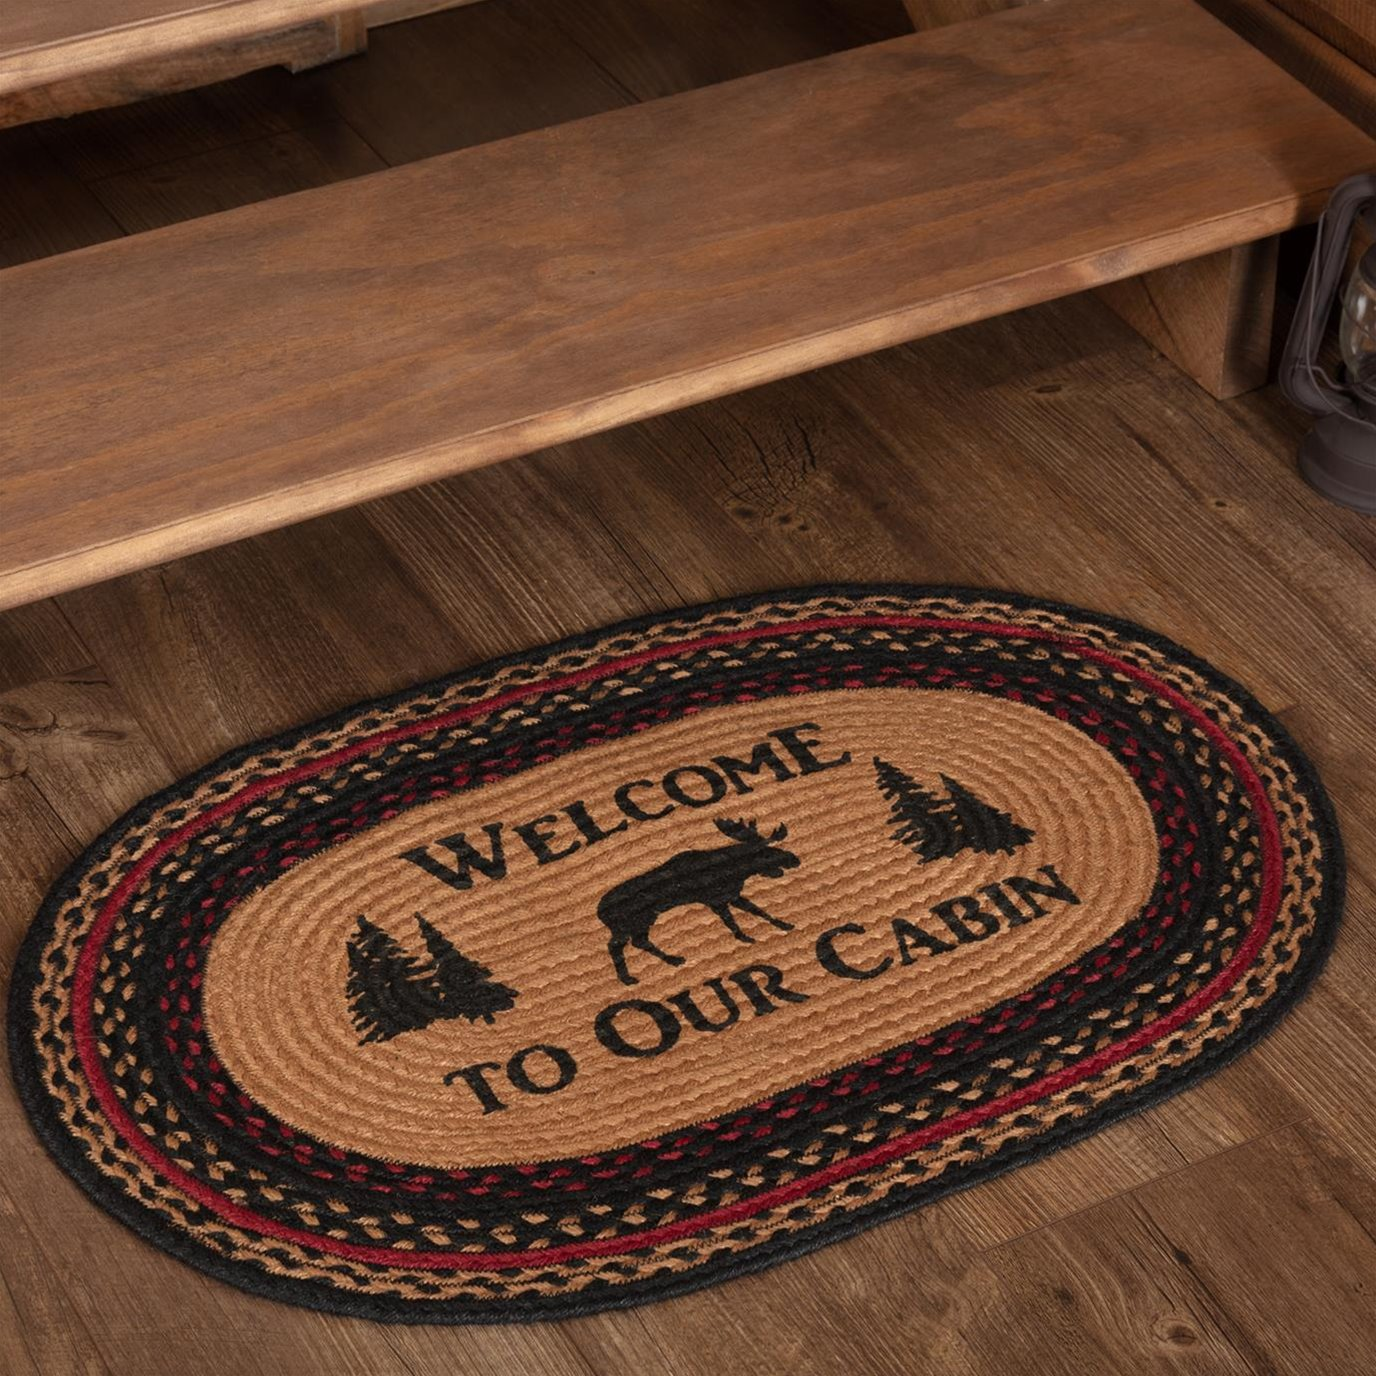 Cumberland Stenciled Moose Jute Rug Oval Welcome to the Cabin 20x30